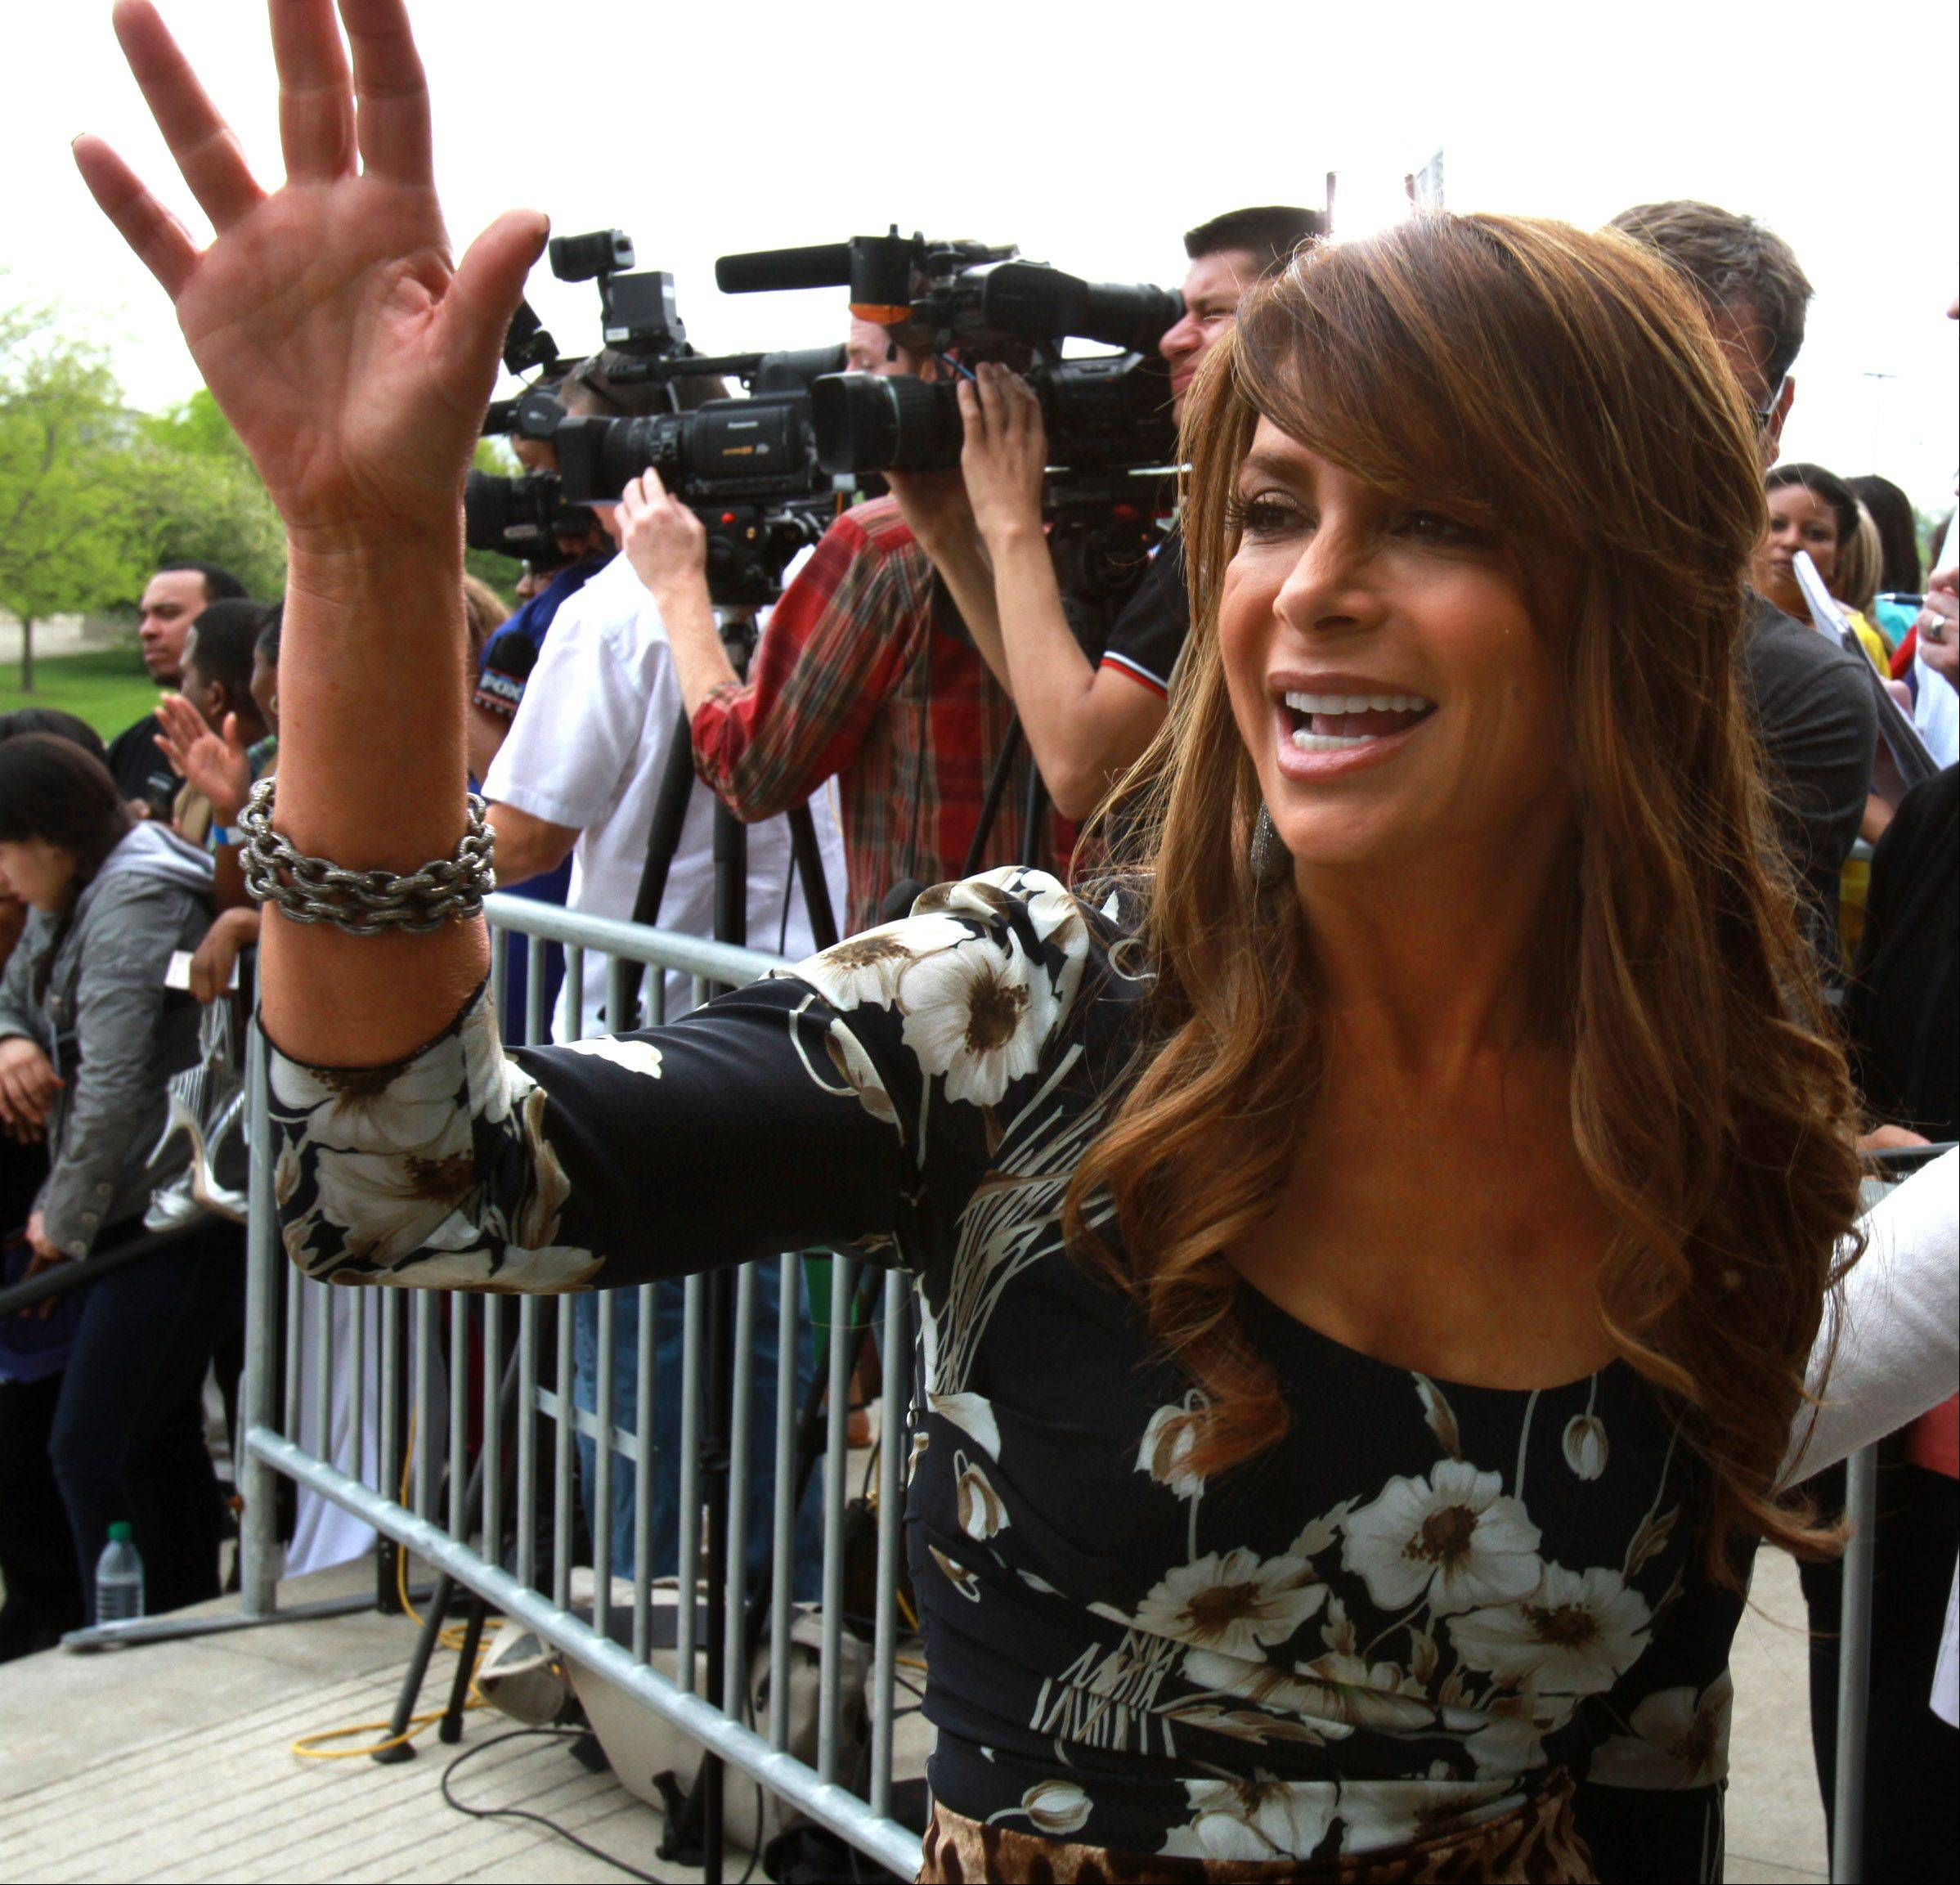 Paula Abdul waves to fans as she arrives at the Sears Centre for taping of the judges round for The X Factor in Hoffman Estates on Thursday, May 19th.